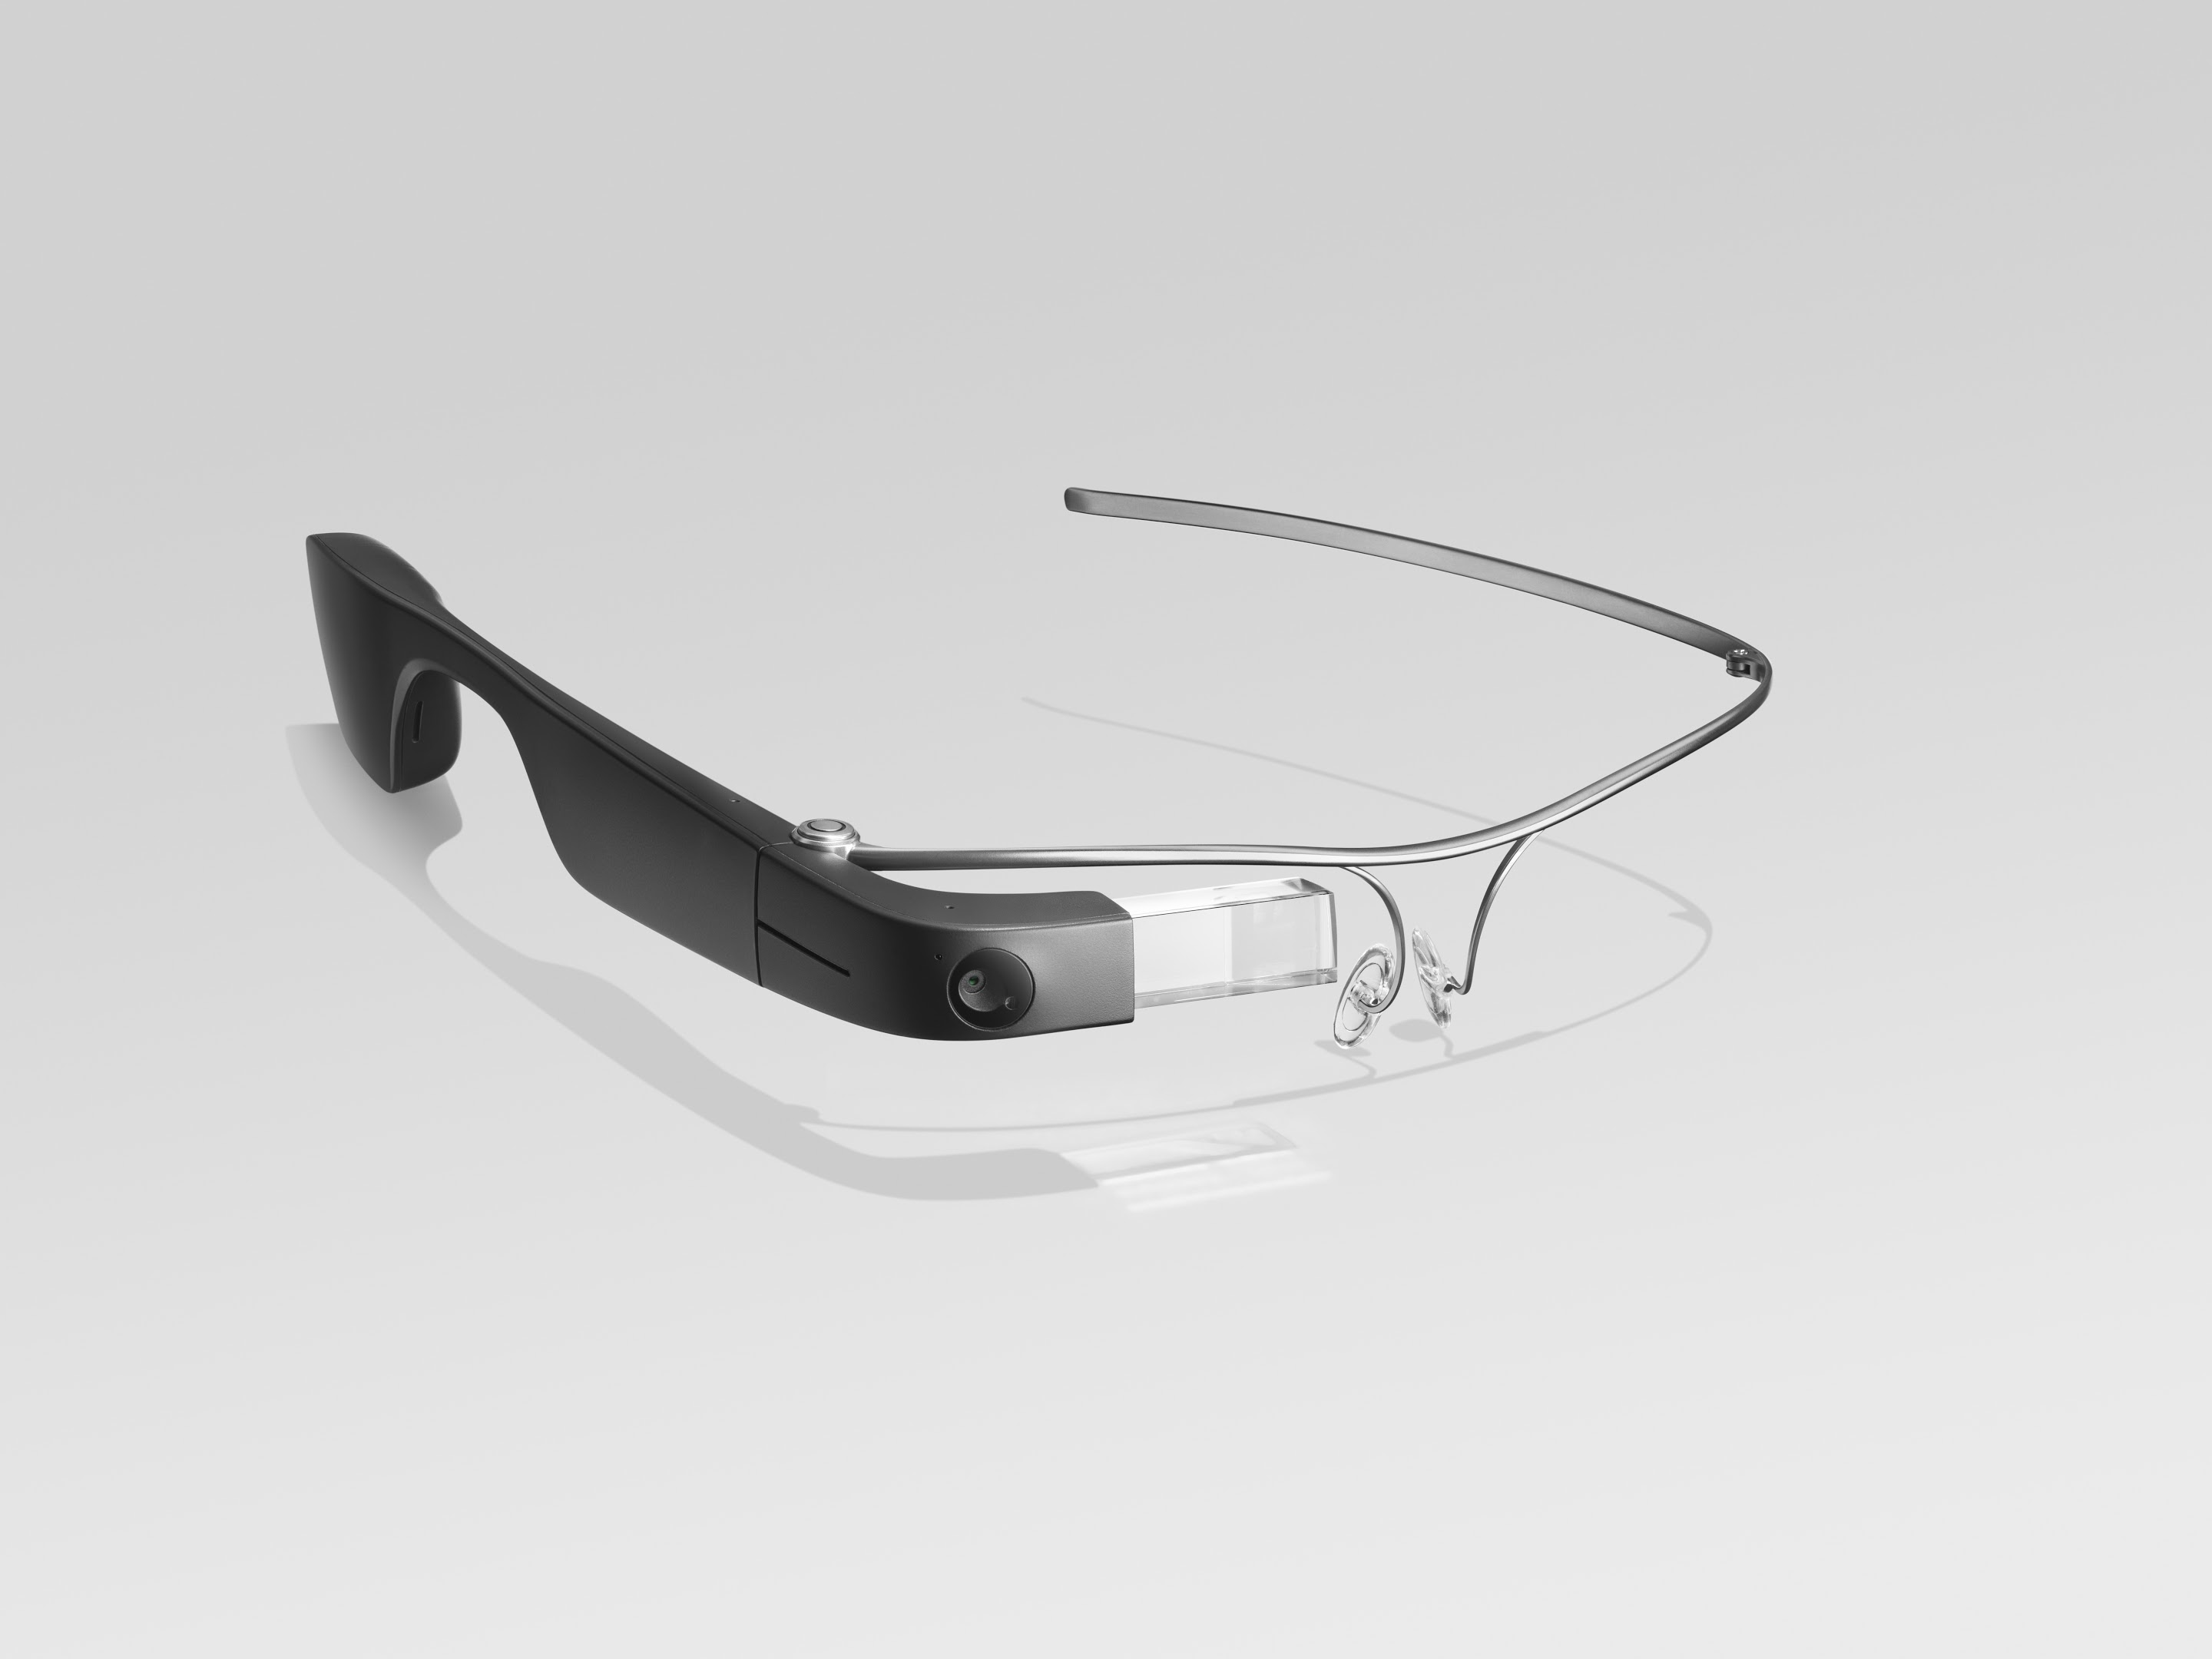 Picture of the Google Glass with Titanium Frame